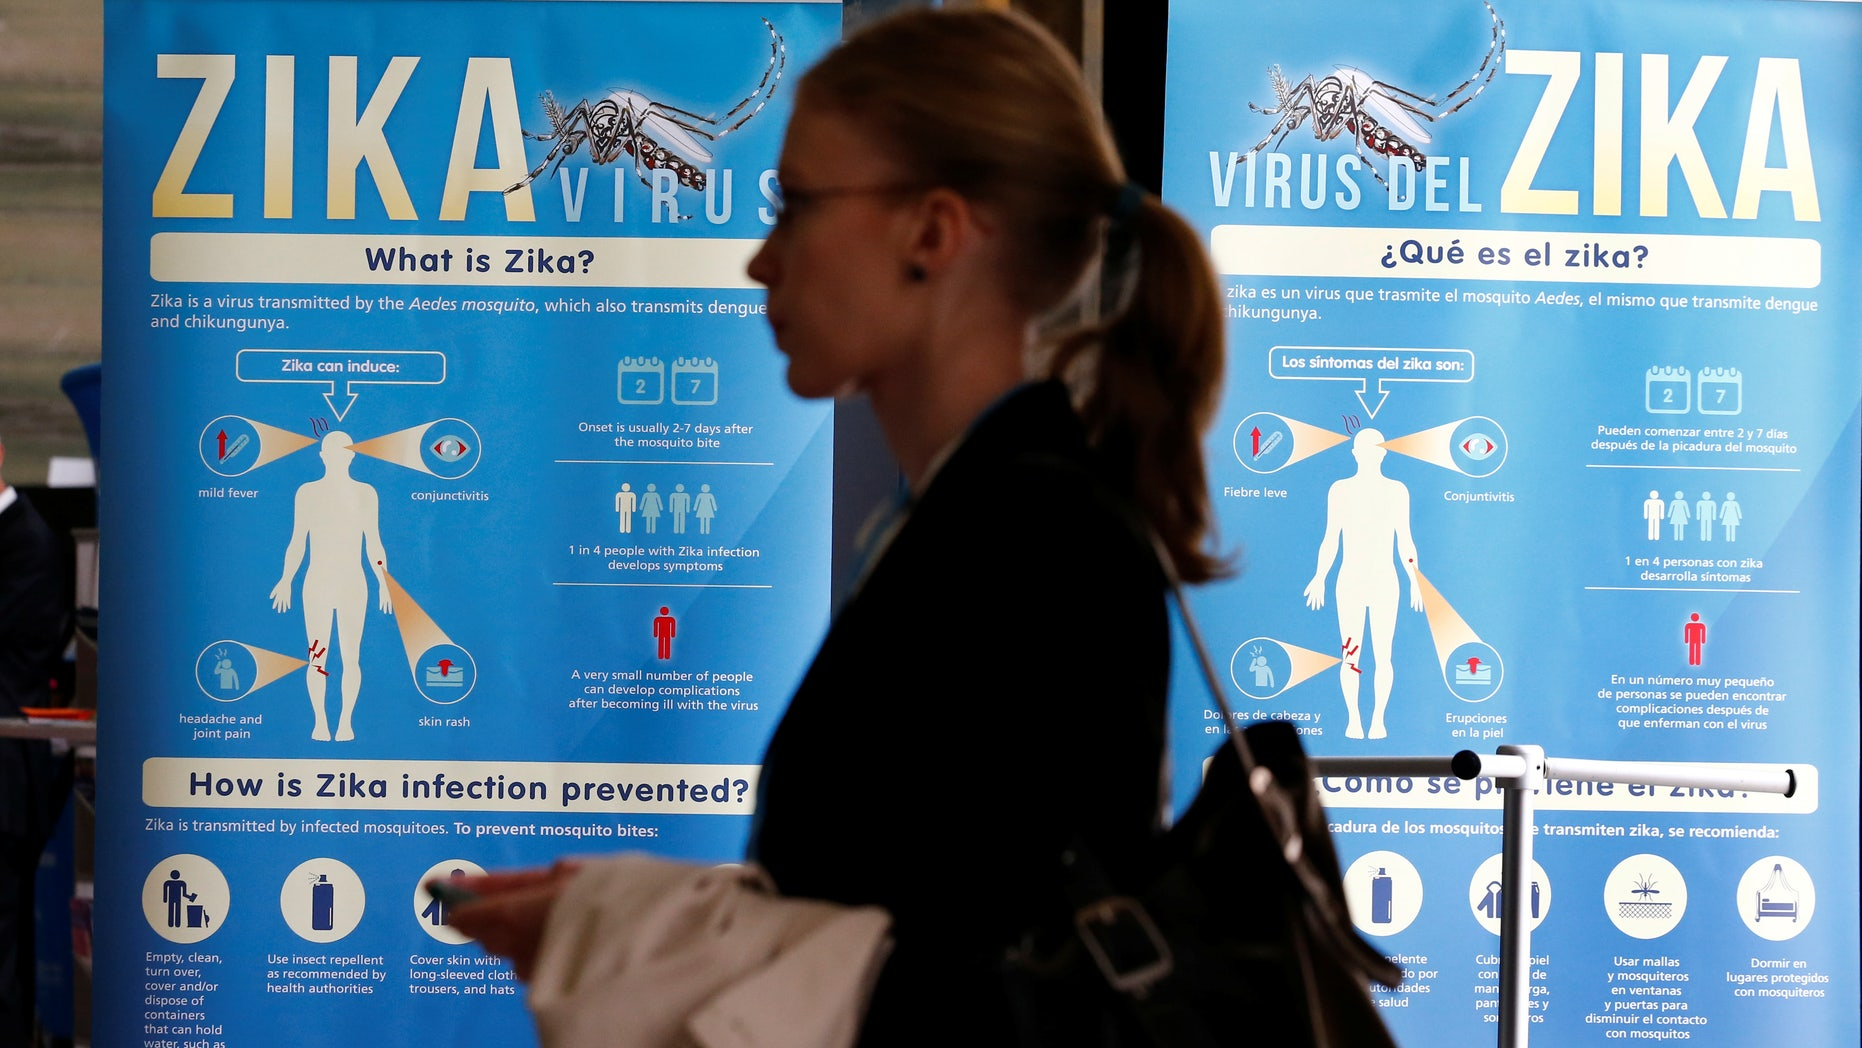 Material to prevent Zika infection by mosquitoes are displayed at the 69th World Health Assembly at the United Nations European headquarters in Geneva, Switzerland, May 23, 2016. REUTERS/Denis Balibouse  - RTX2ECWZ